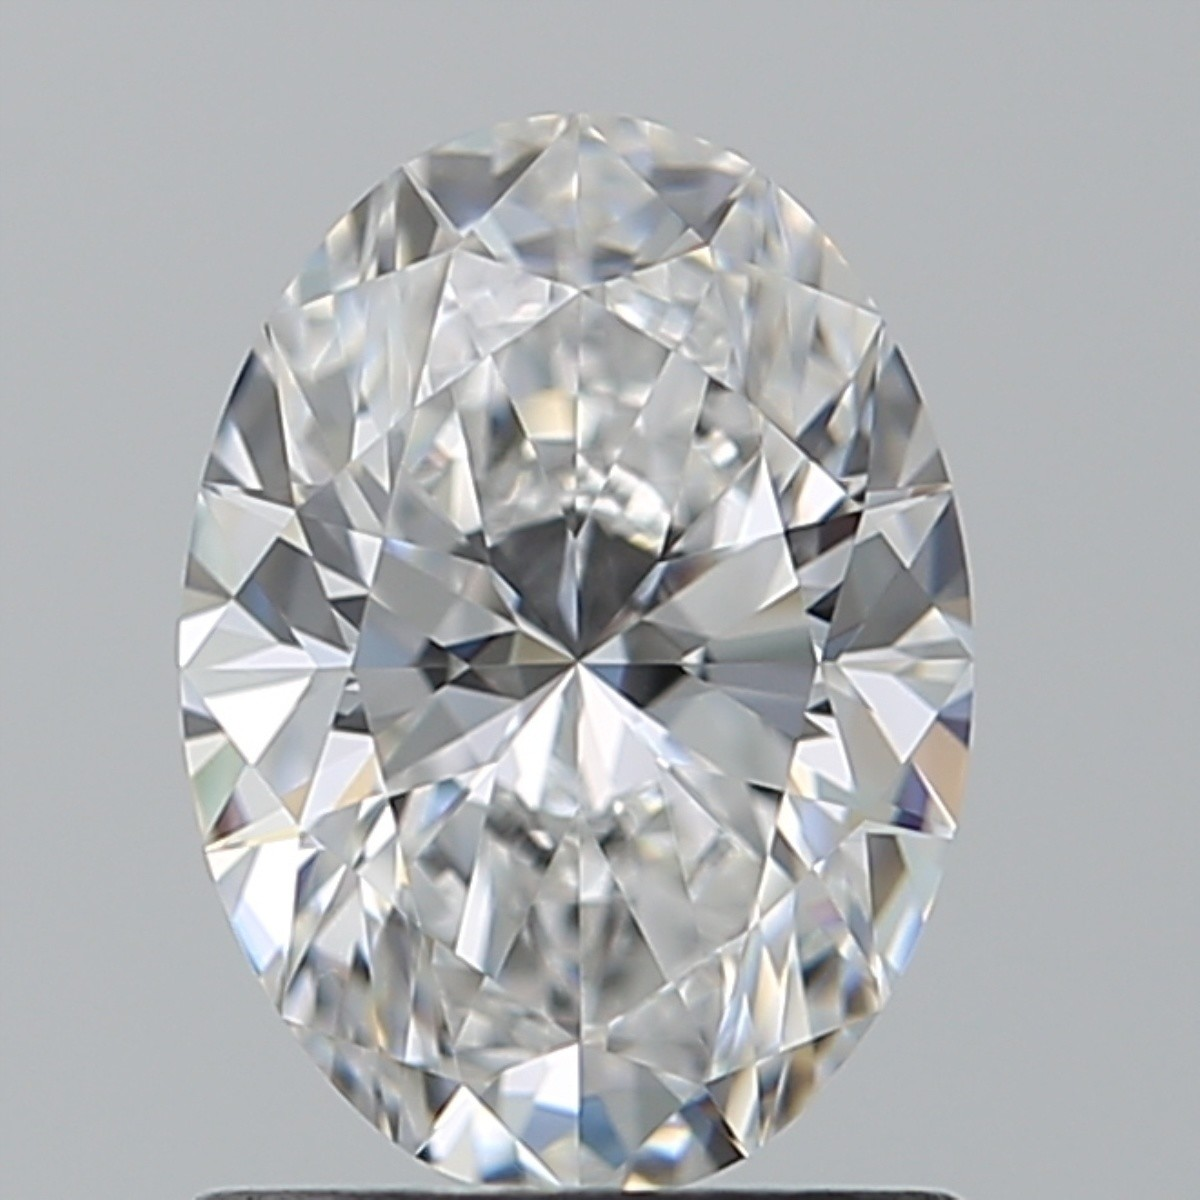 1.04 Carat Oval Diamond (D/IF)